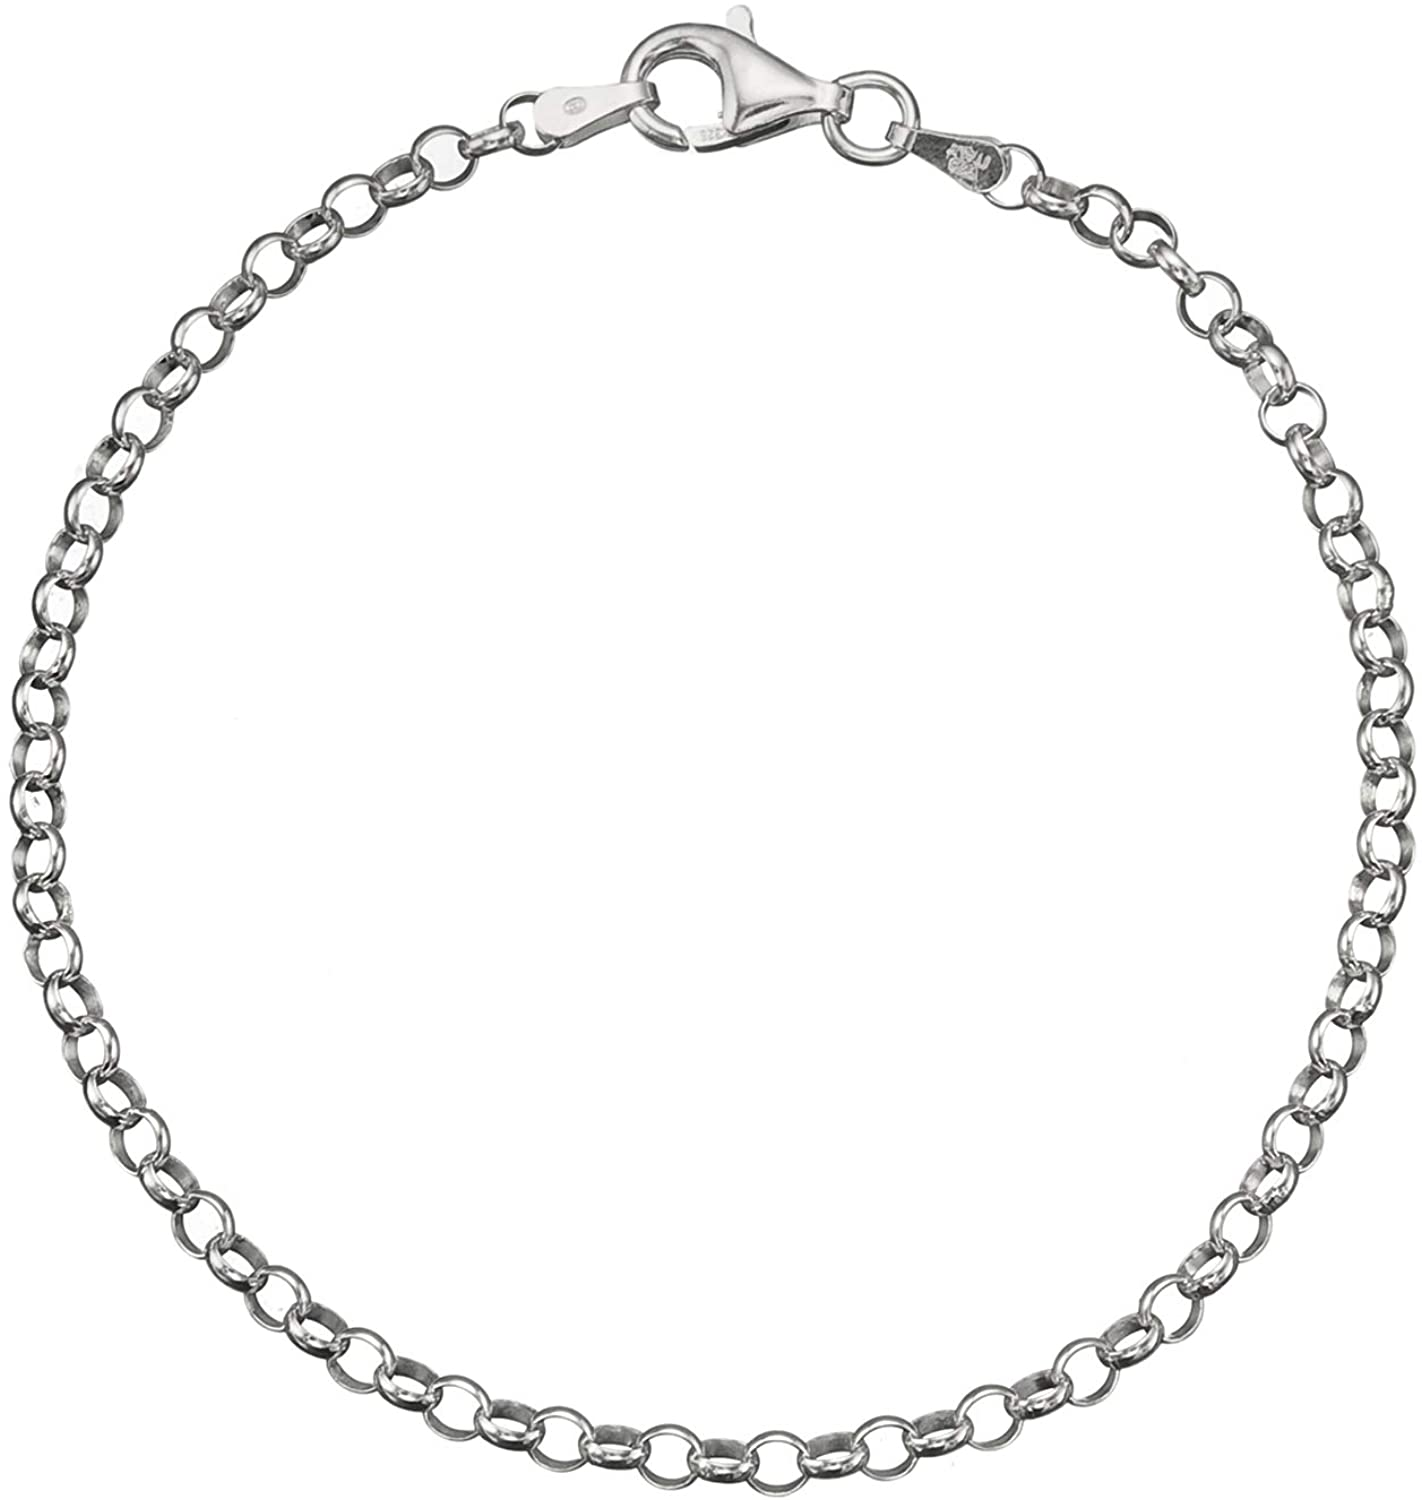 Solid 925 Sterling Silver 3.2mm Italian Round Rolo Cable Link Chain Anklet 9